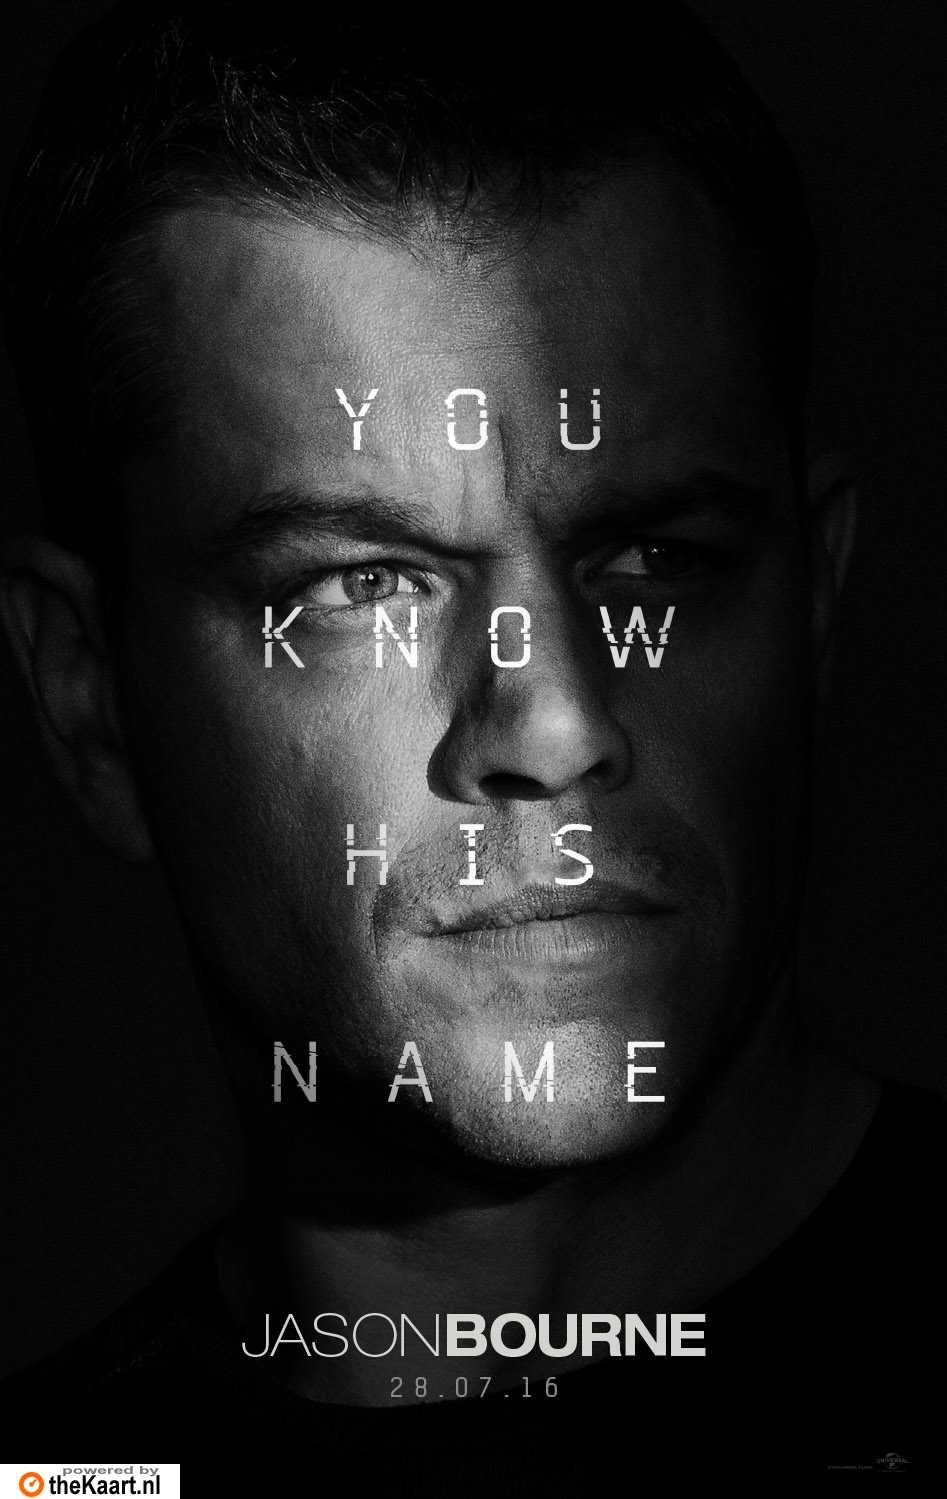 Jason Bourne poster, � 2016 Universal Pictures International